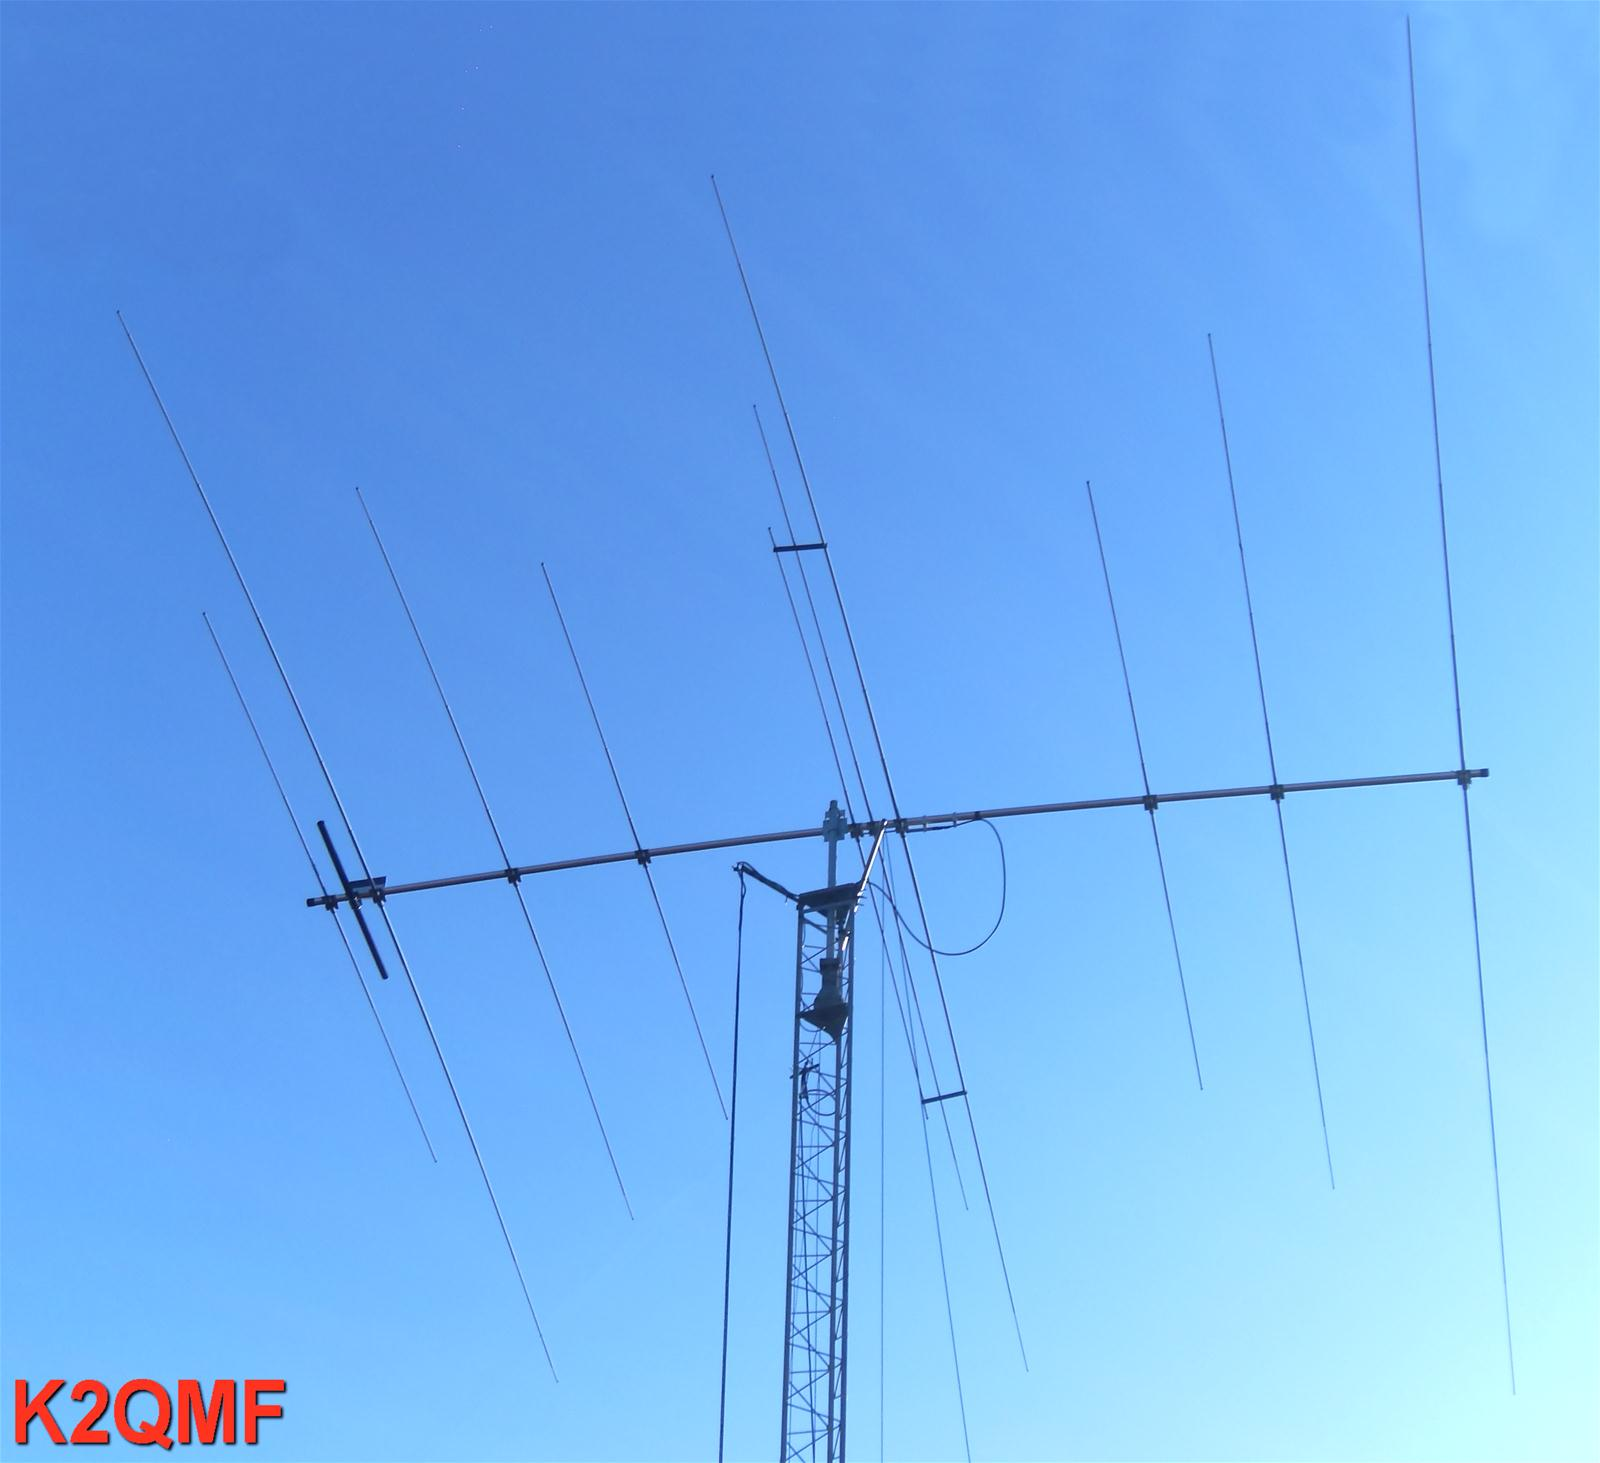 Dx Engineering Skyhawk Tri Band Yagi Antennas Dxe 3x10 Free Antenna Shipping On Most Orders Over 99 At